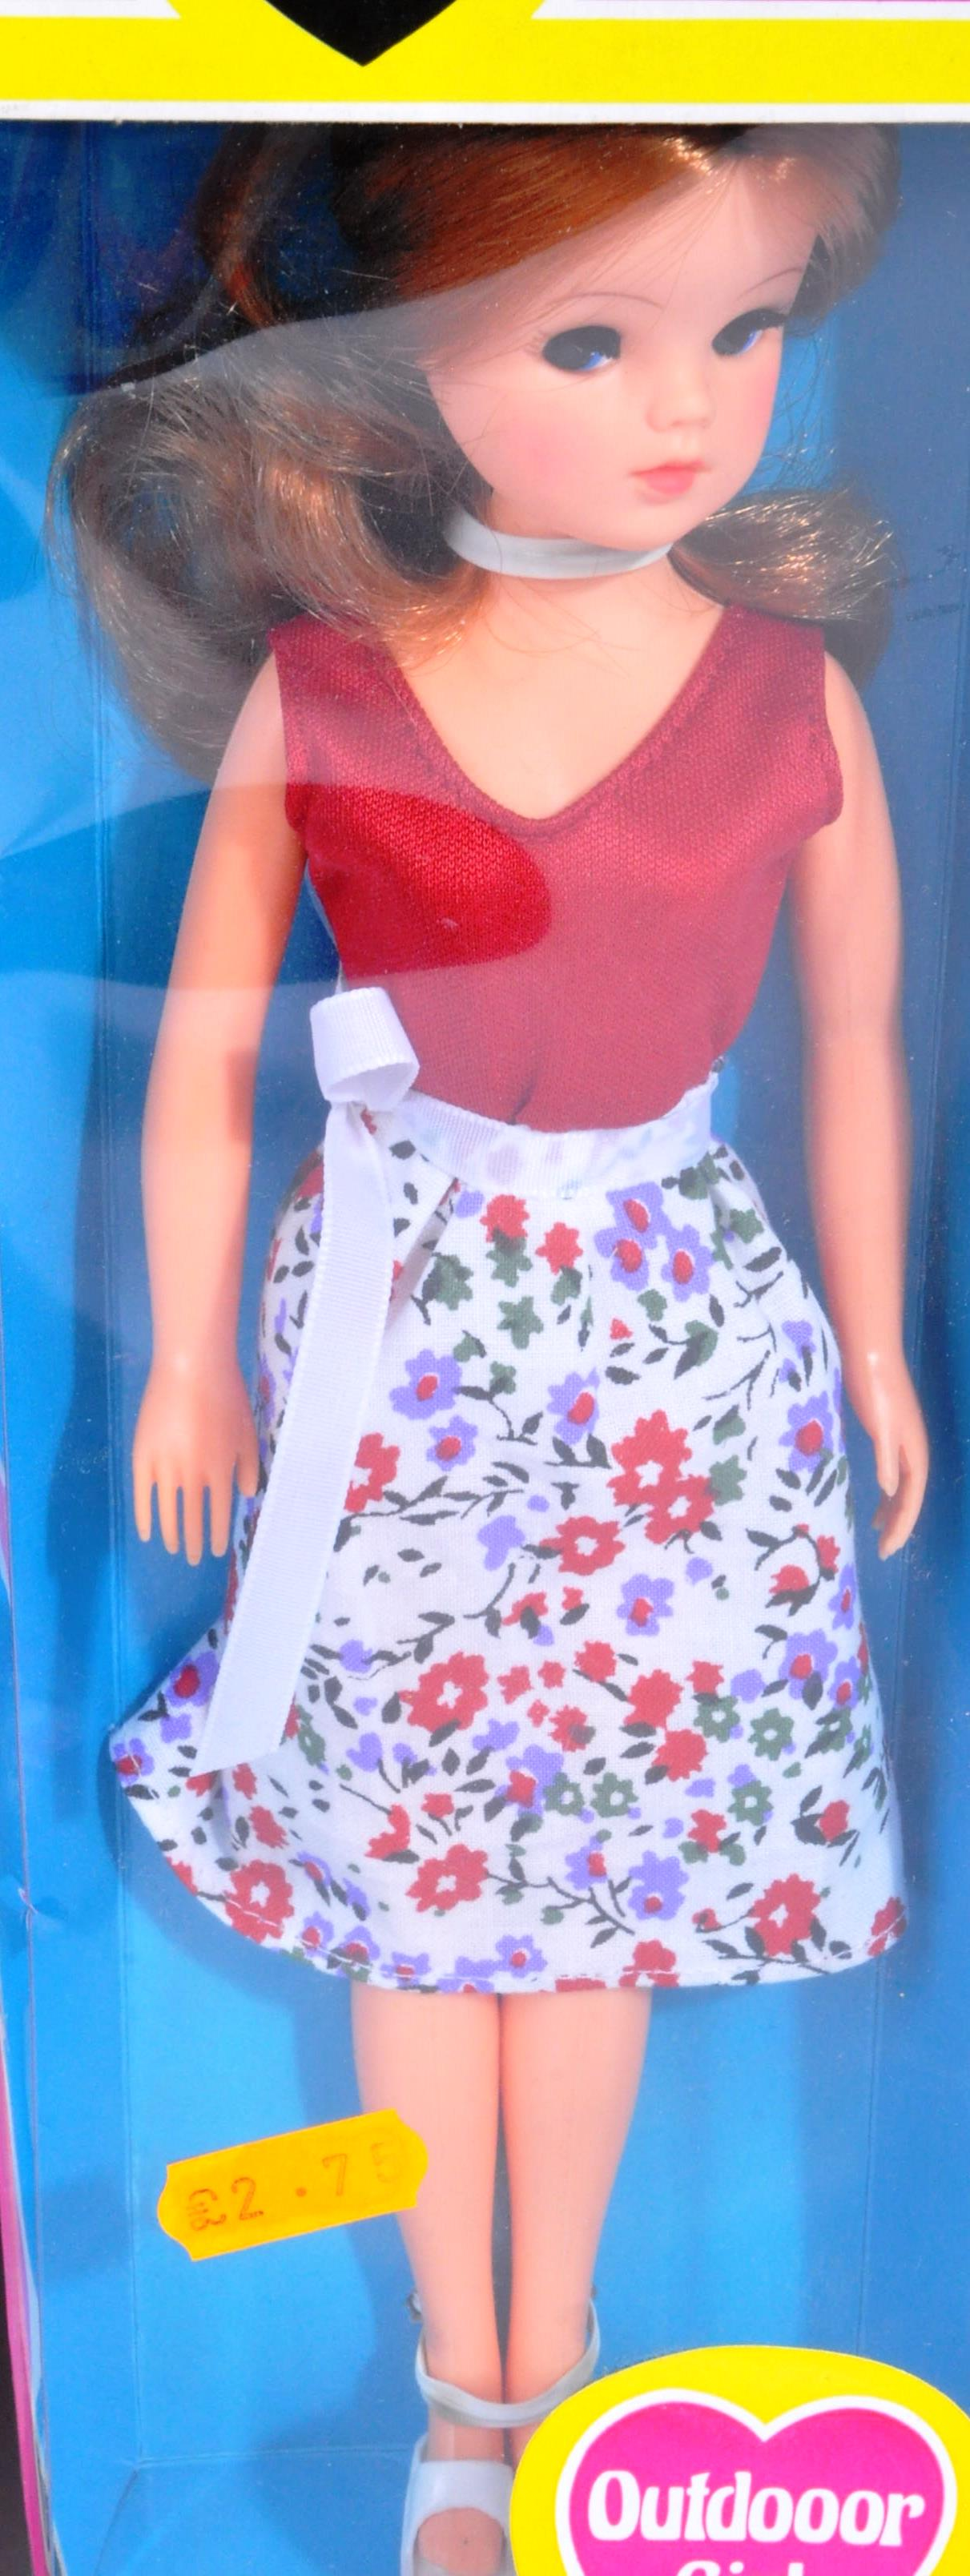 SINDY - COLLECTION OF ORIGINAL 1970S DOLLS & ACCESSORIES - Image 5 of 5